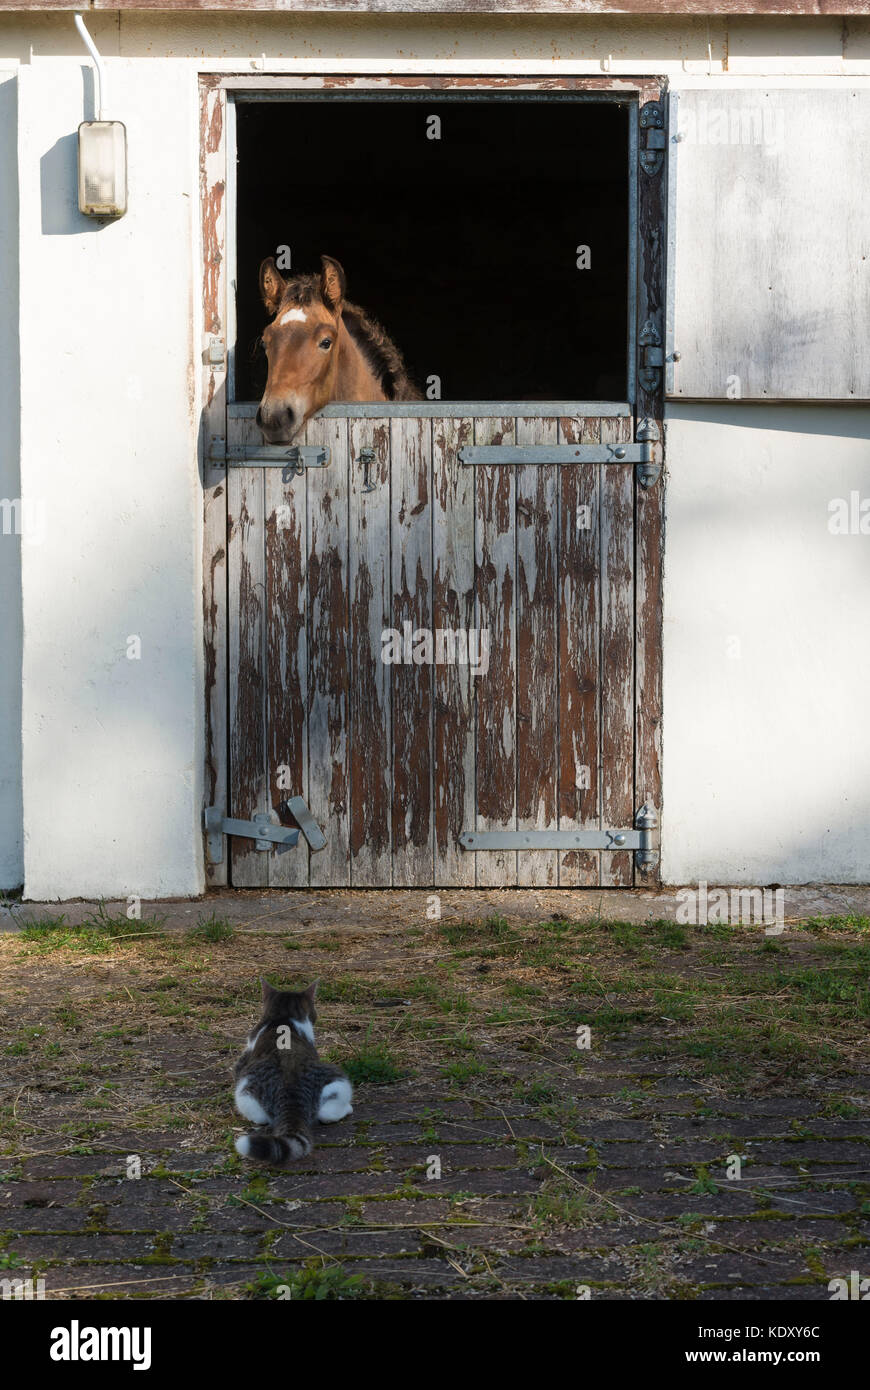 A Foal Watches a Kitten from his Stable Door - Stock Image